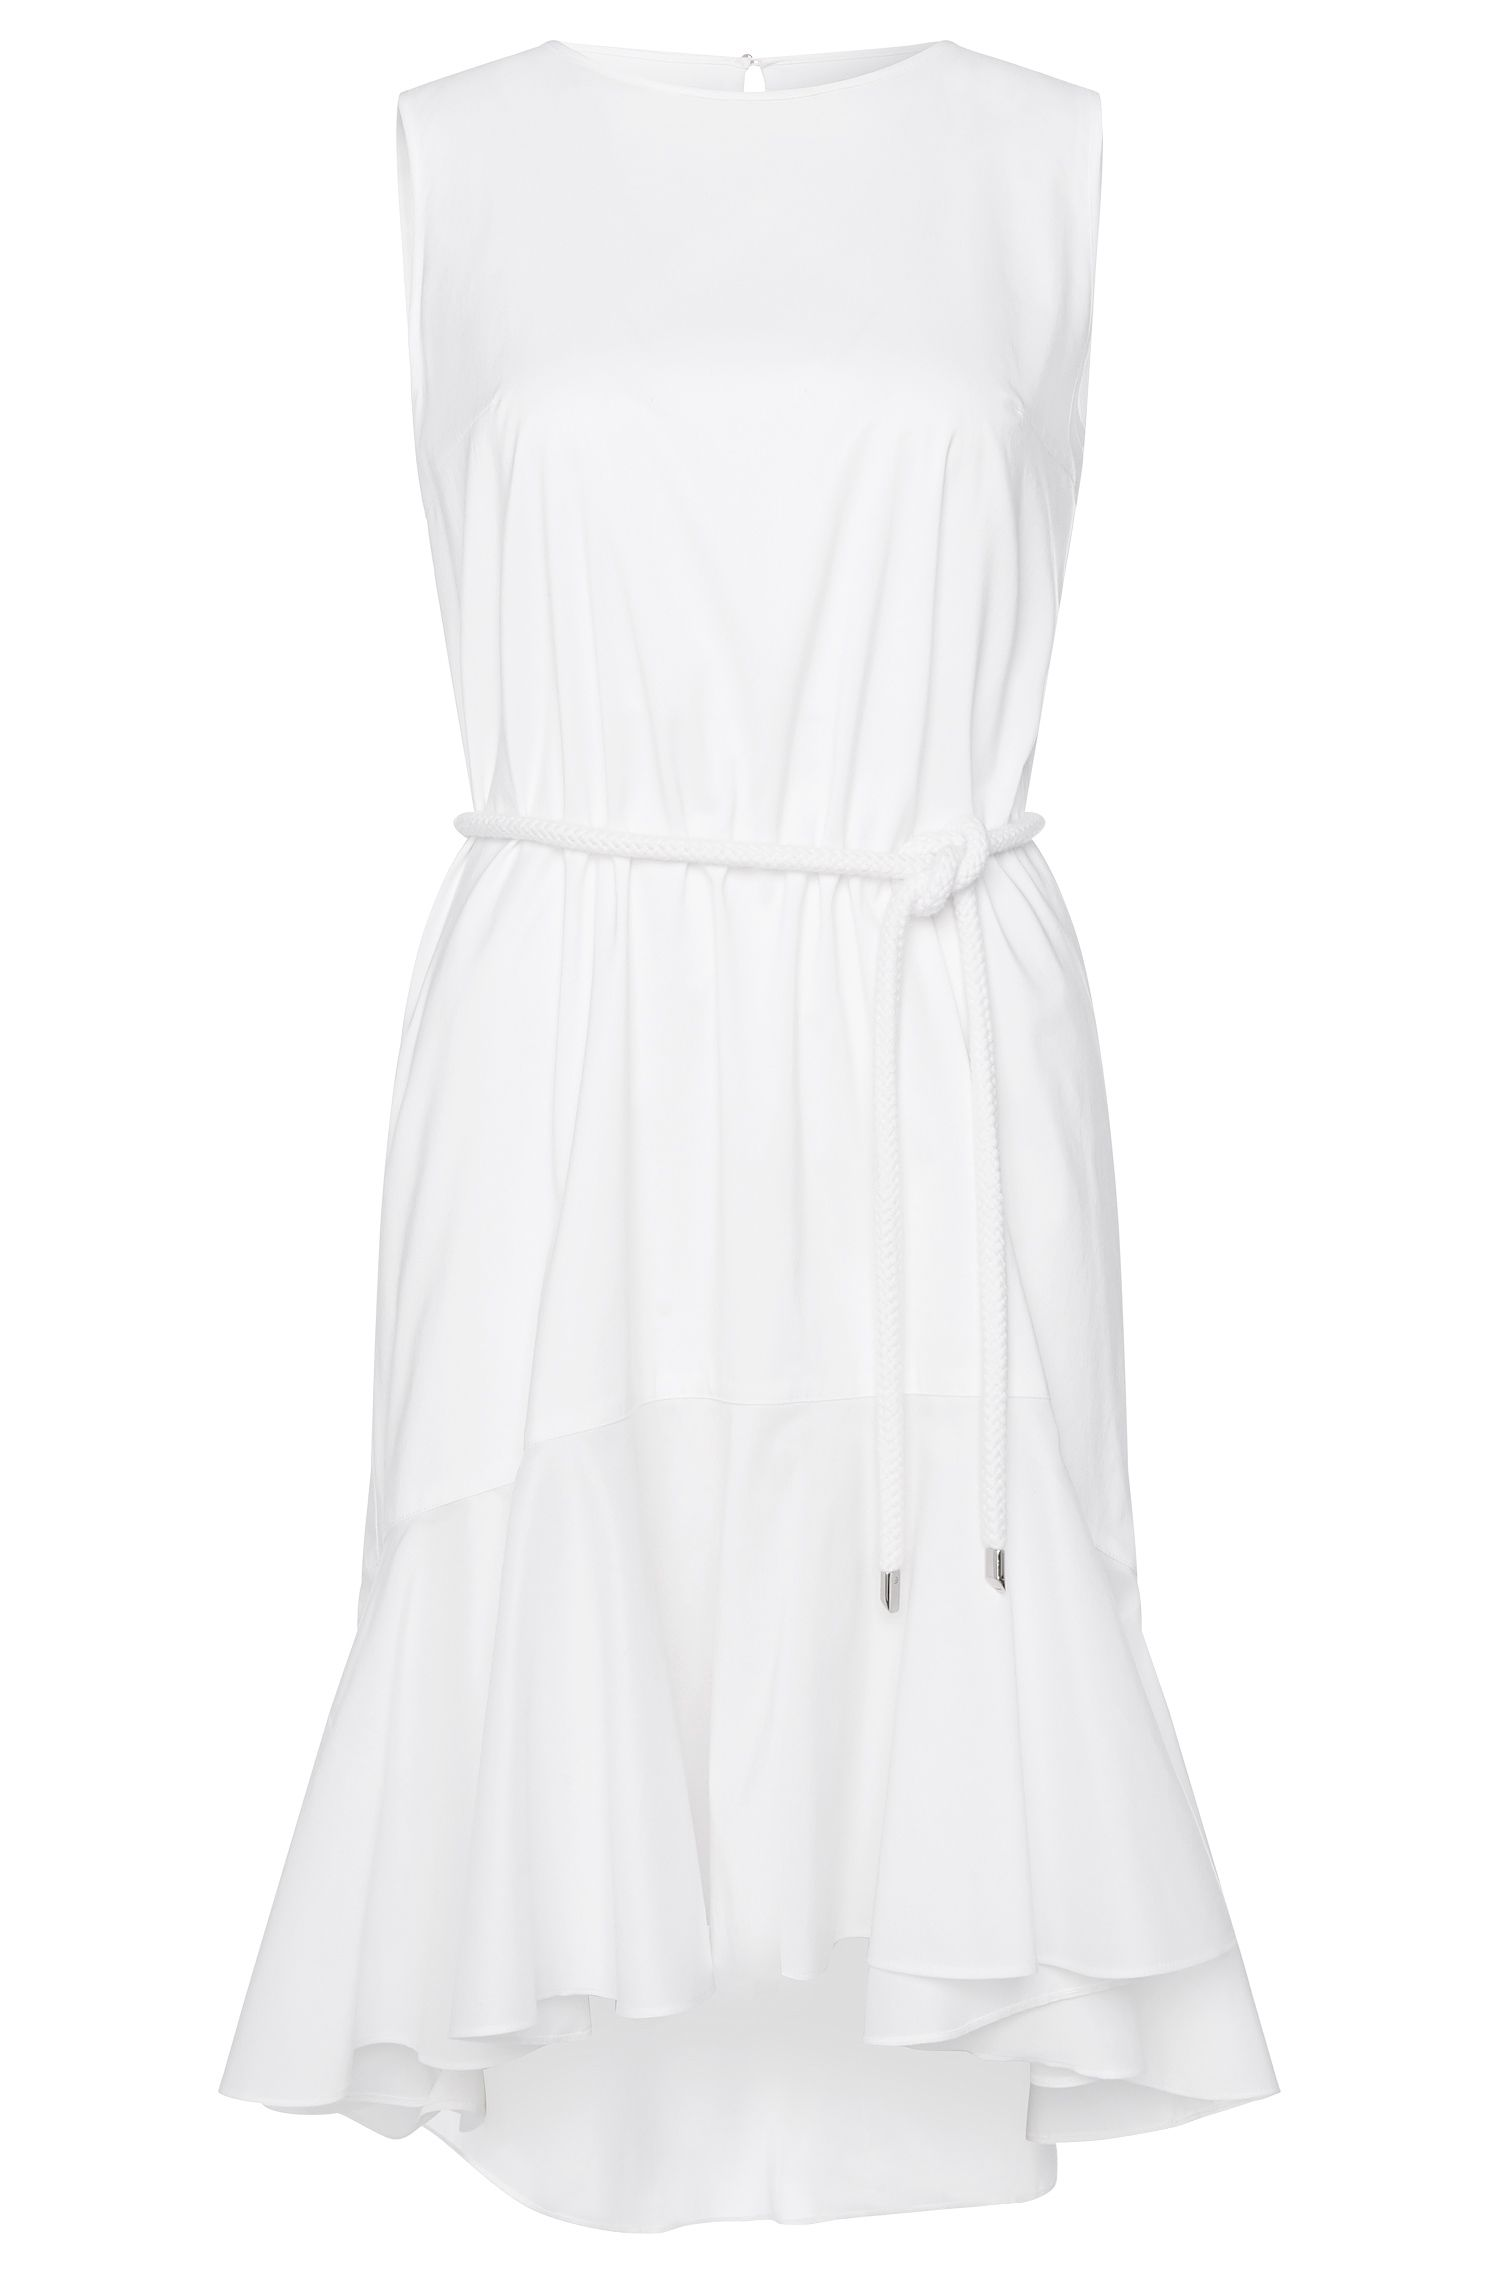 Sleeveless dress in cotton blend with cord: 'Kaleva'